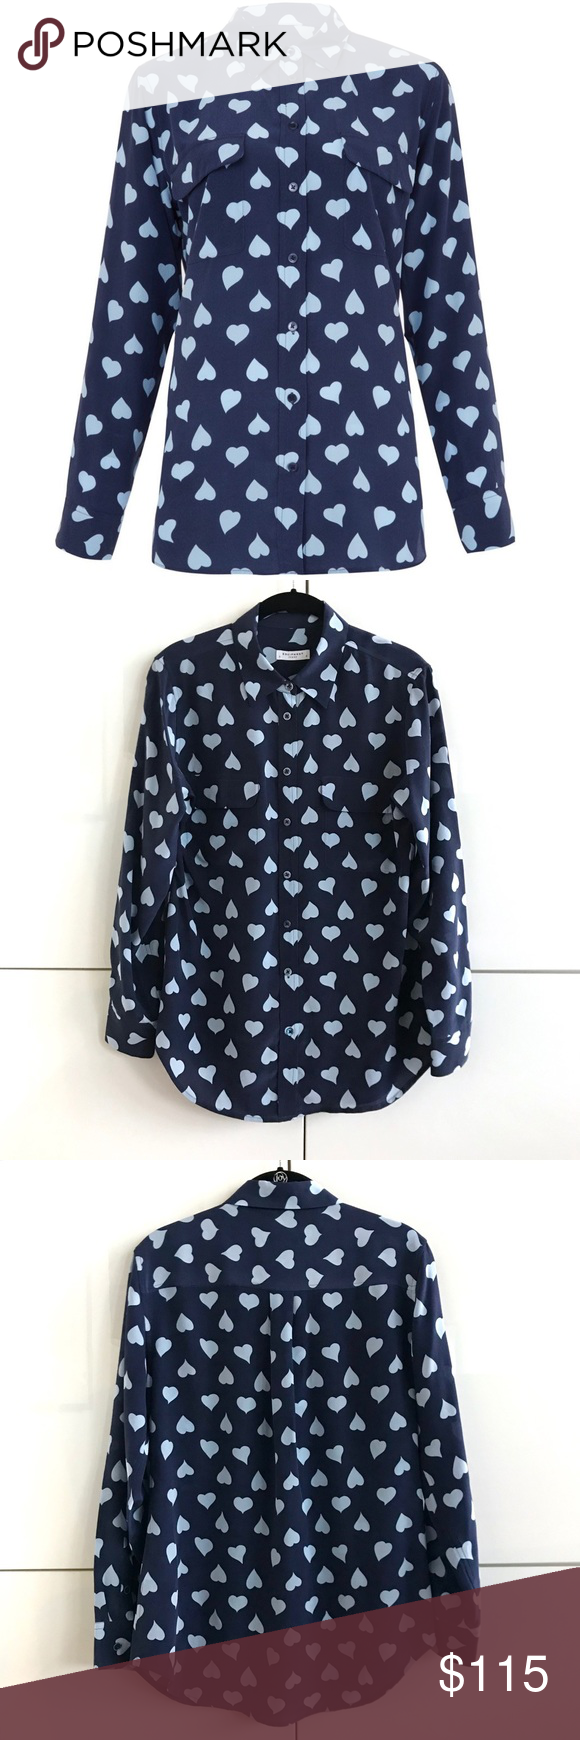 60584b09b5426 NWOT Equipment Signature Heart Print Silk Shirt 🆕 NWOT Equipment Signature  Heart Print Silk Shirt